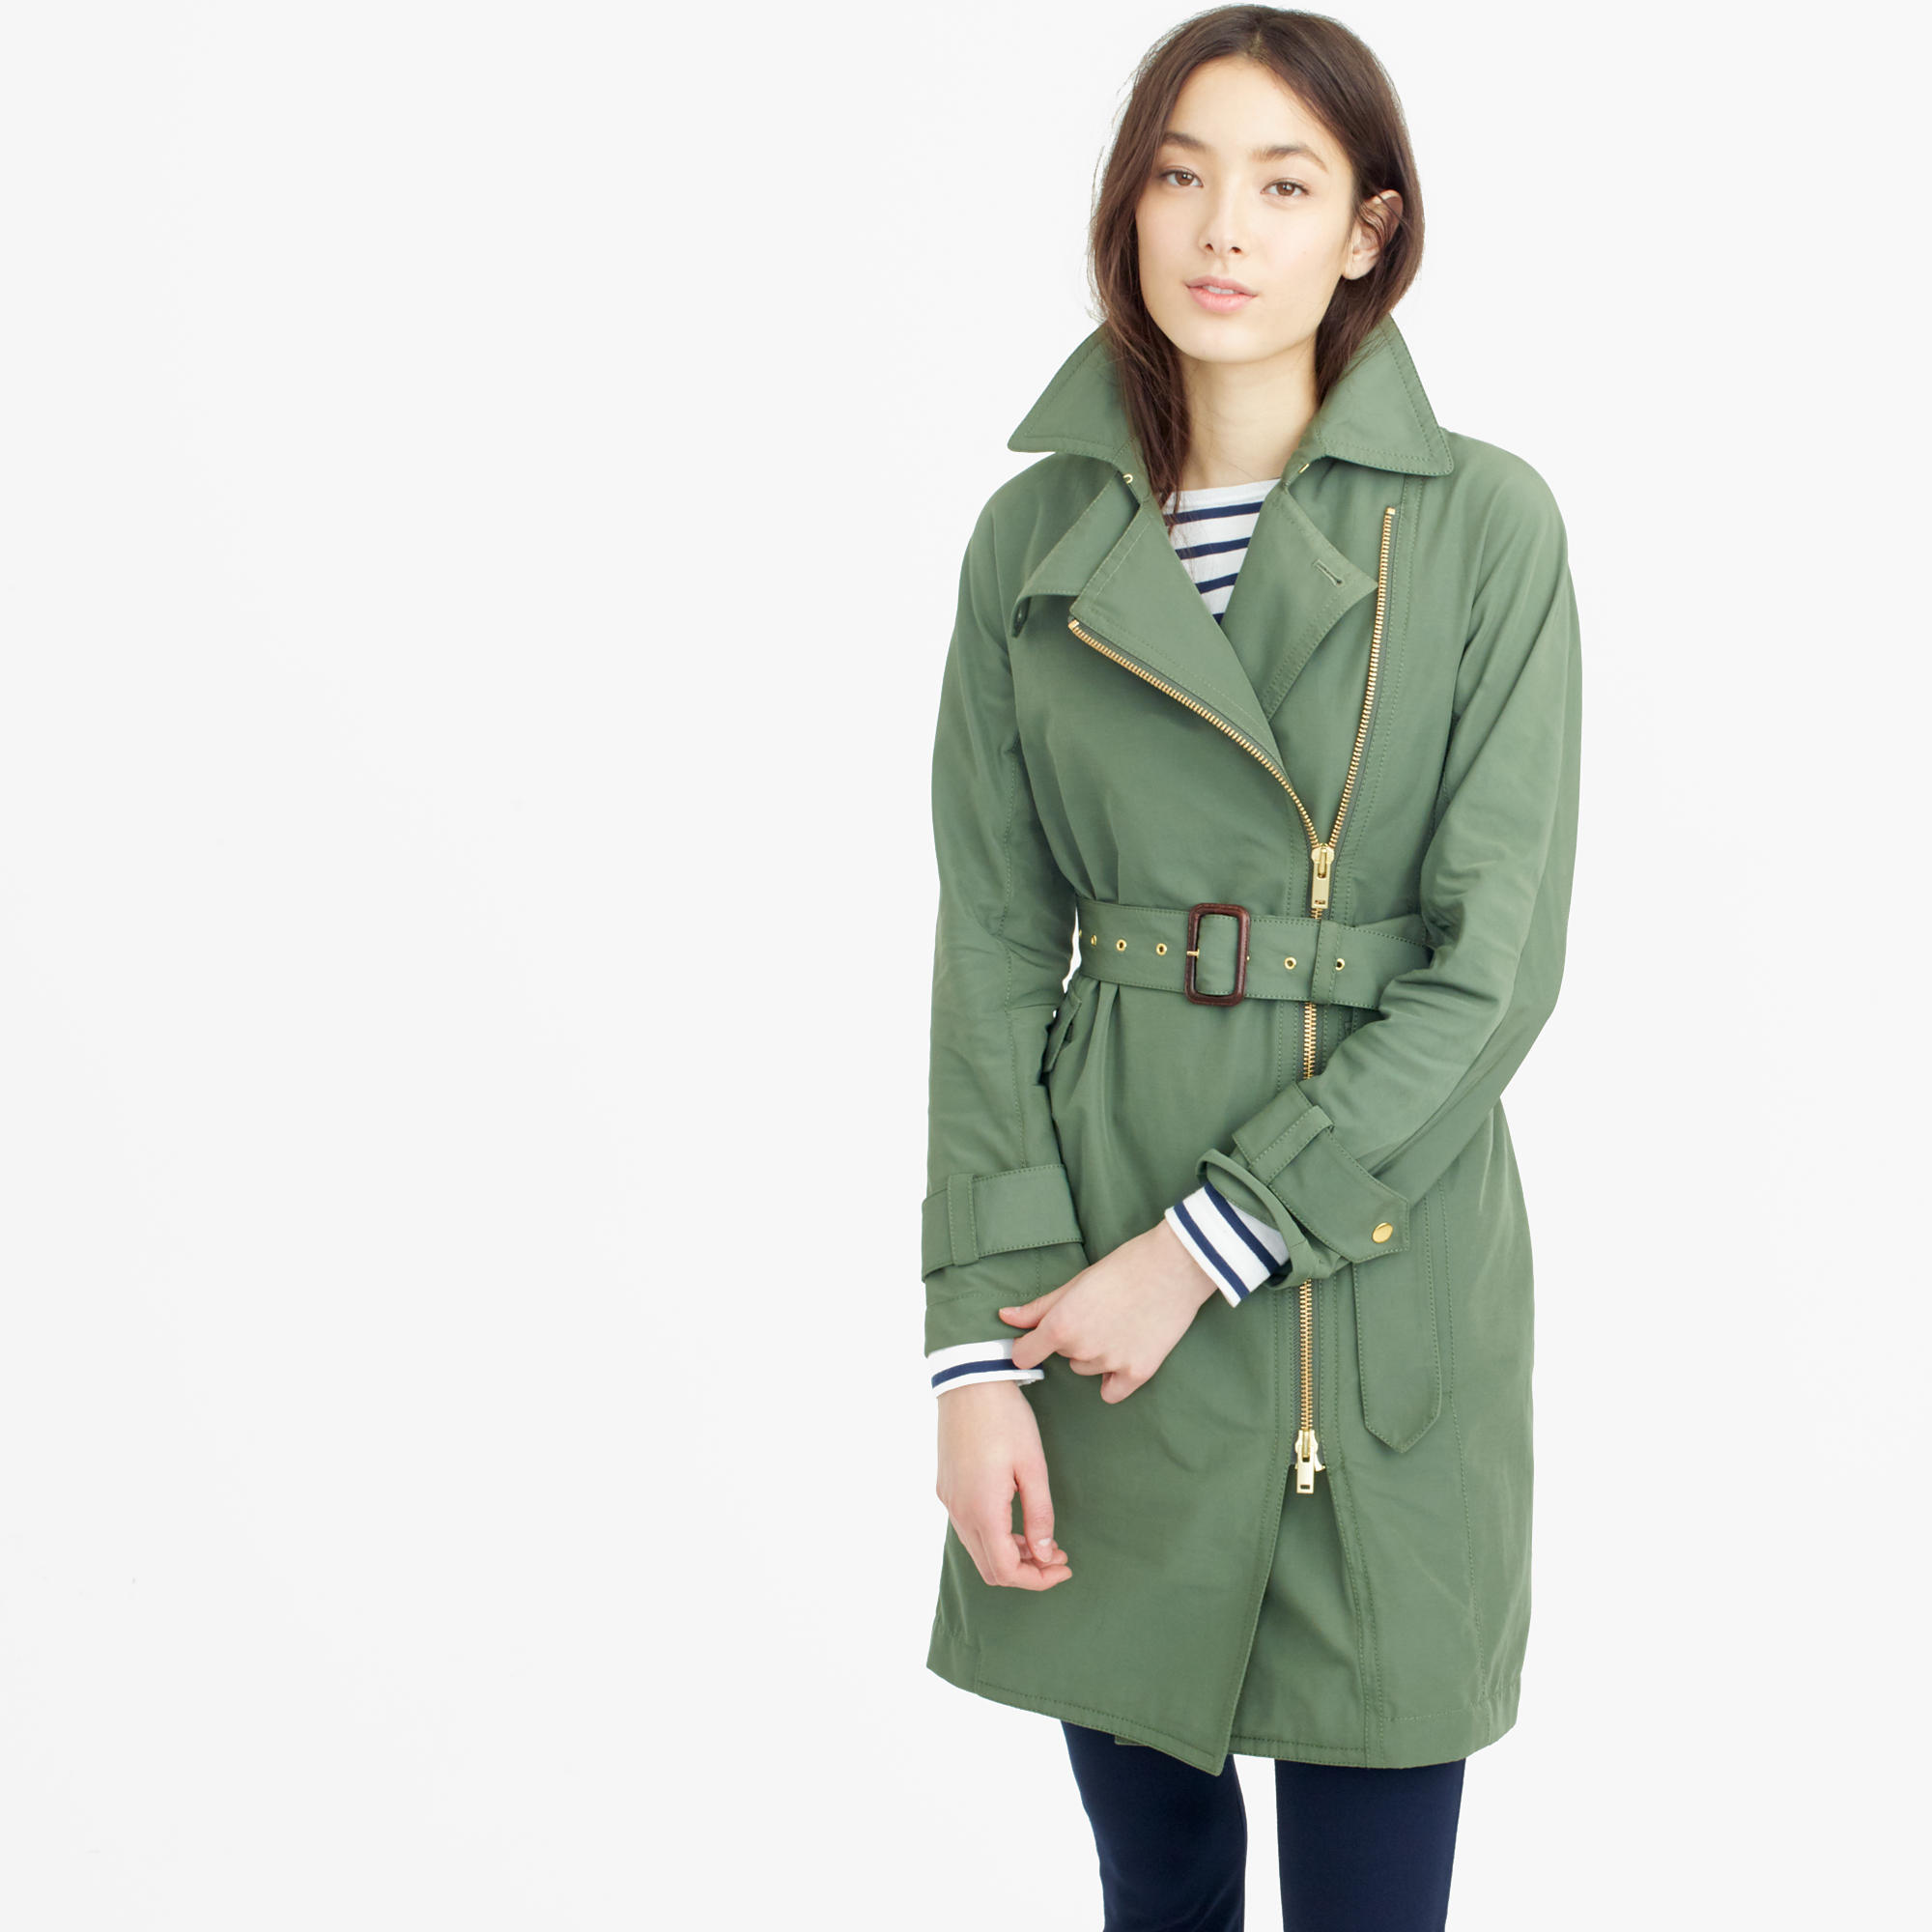 Belted Zip Trench Coat in Water Resistant Cotton  available at J.Crew- on sale for $159.99